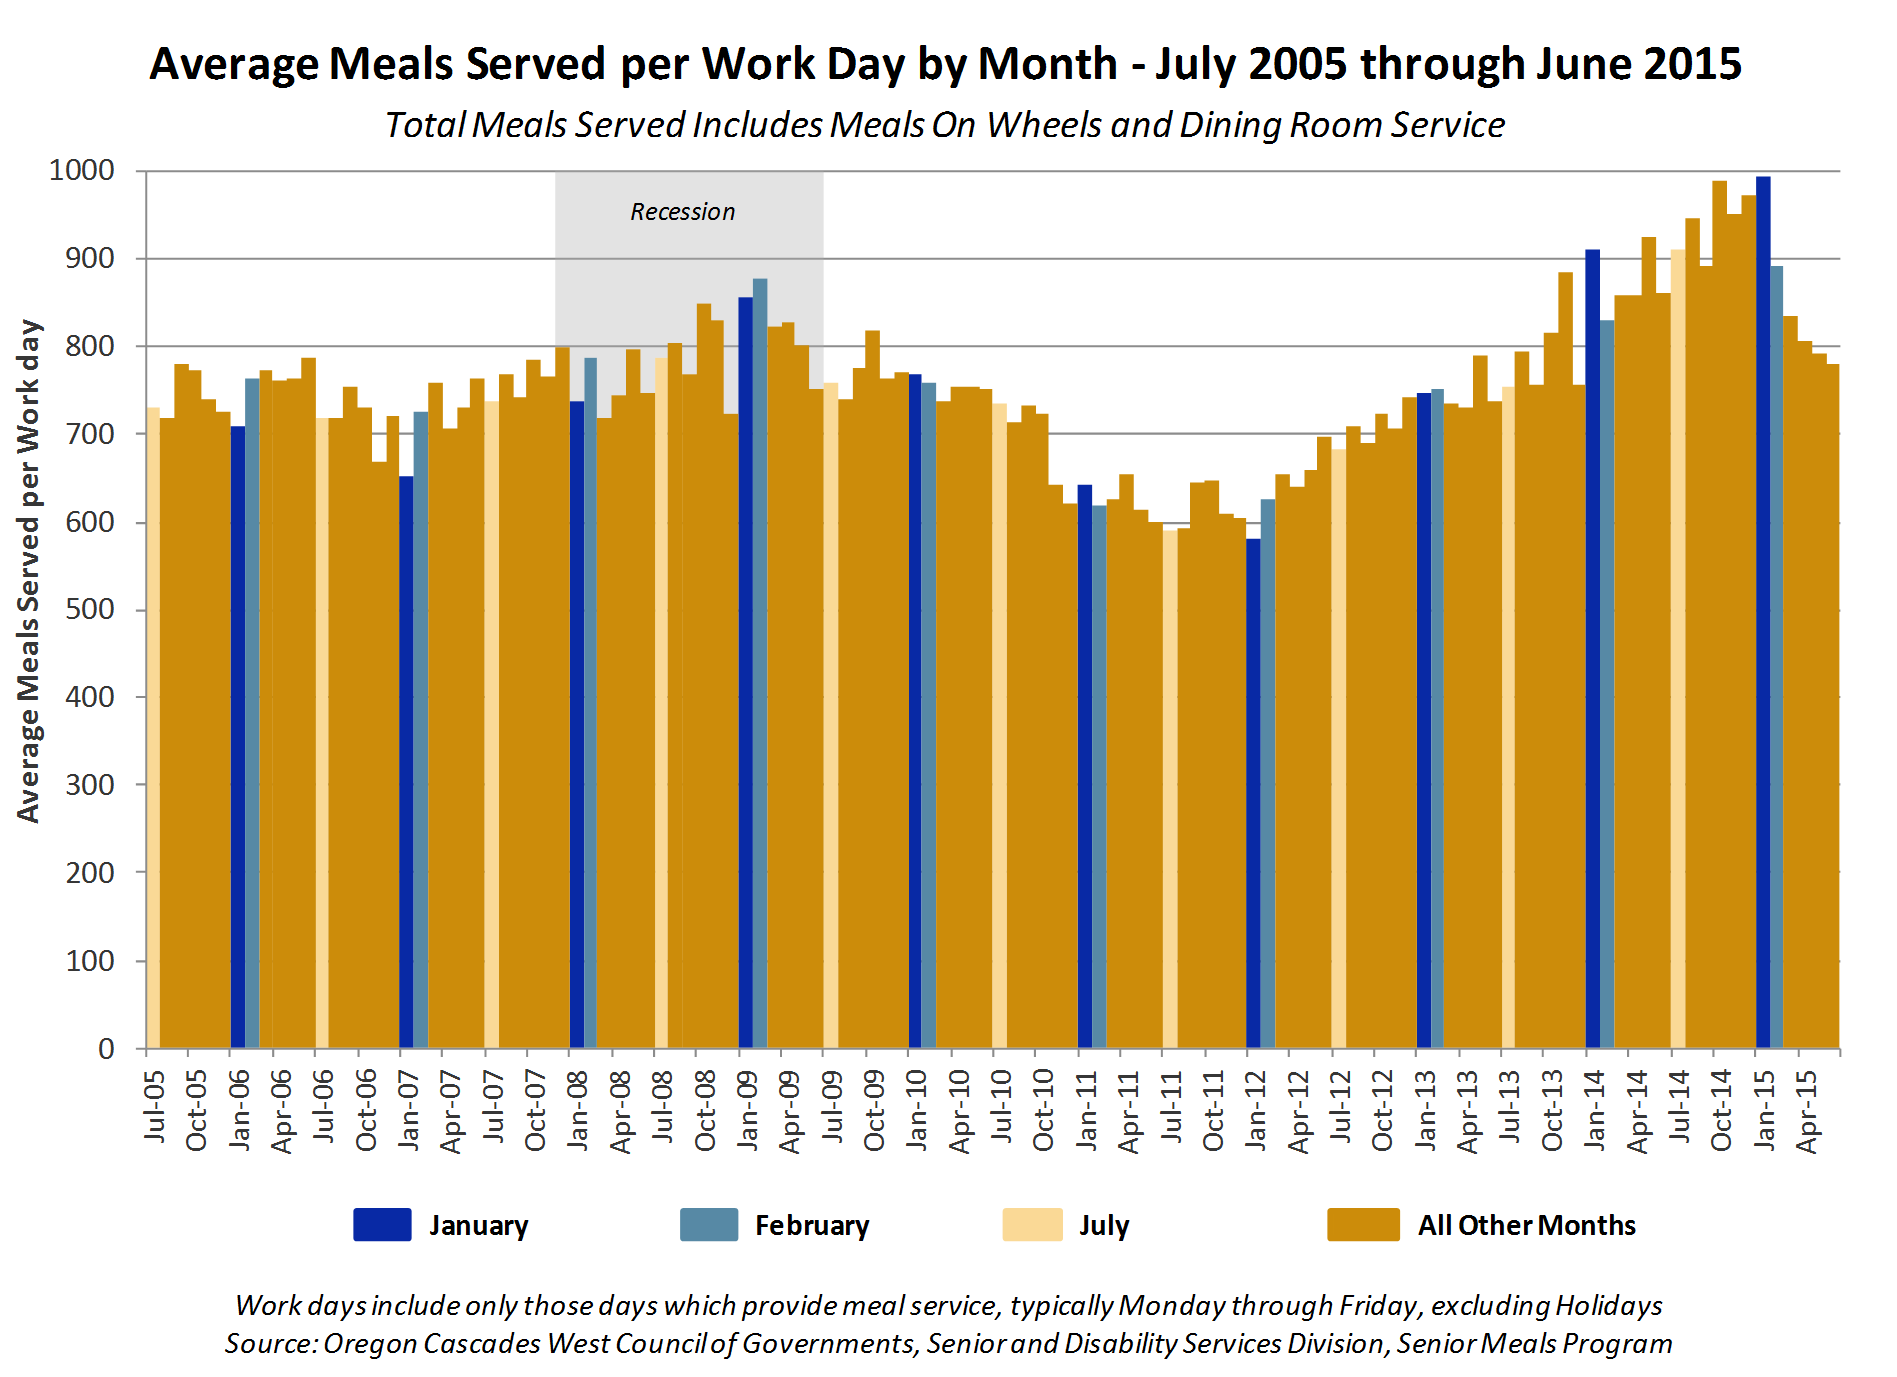 Average Meals Served per Work Day by Month